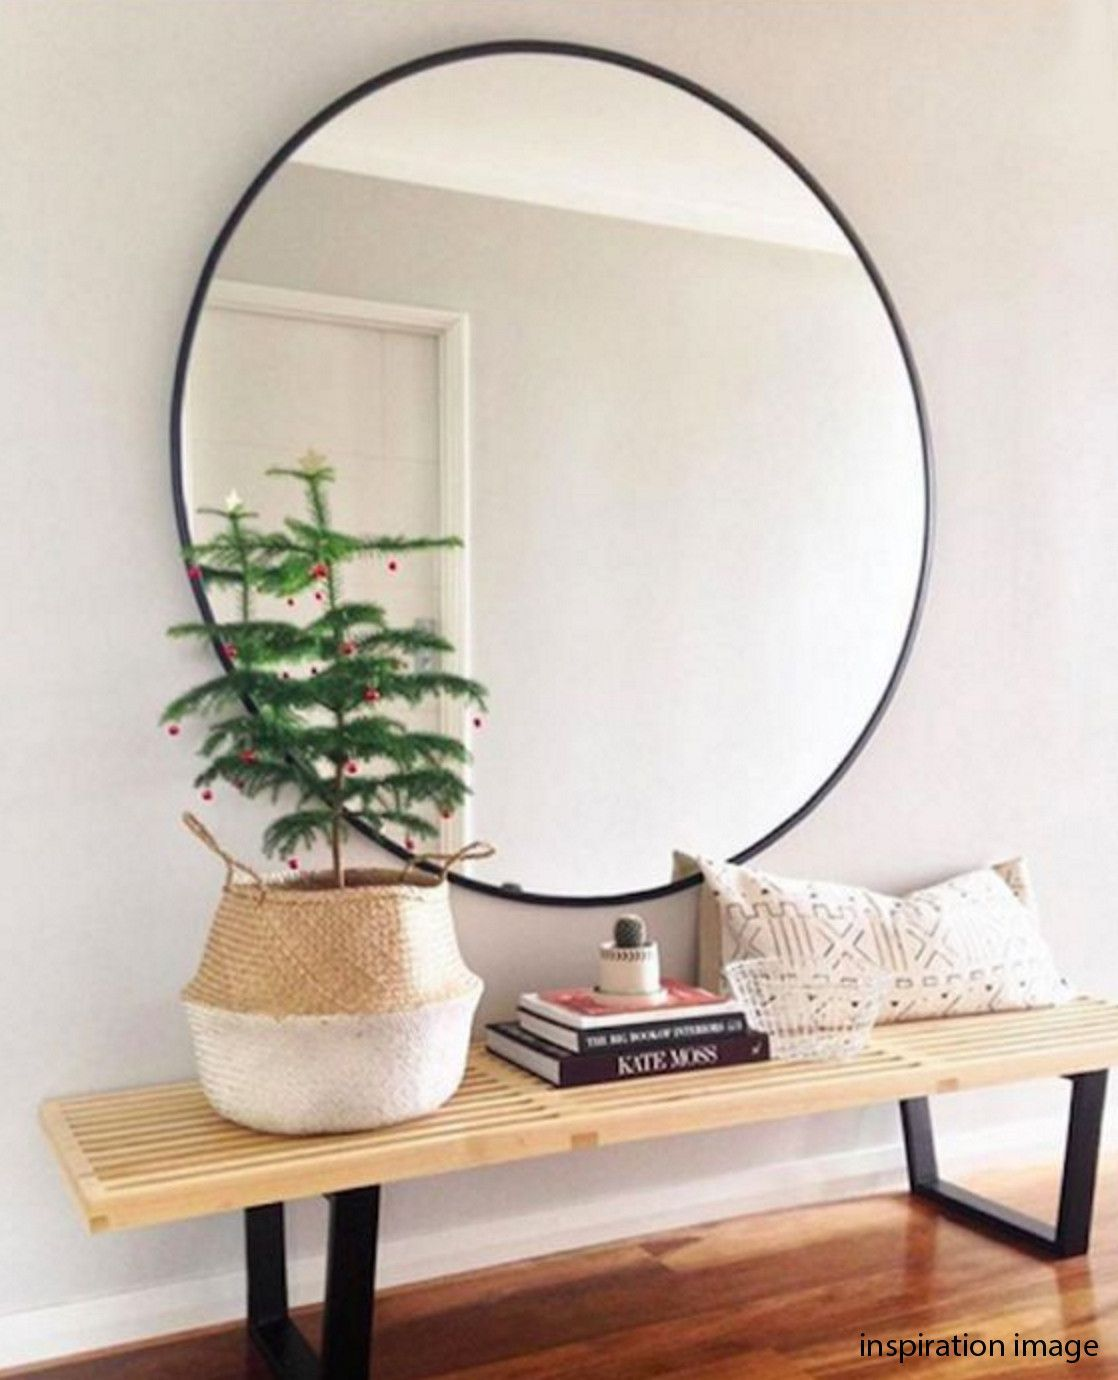 Hallway furniture with mirror  Argie Round Mirror  hallway ideas  Pinterest  Round mirrors